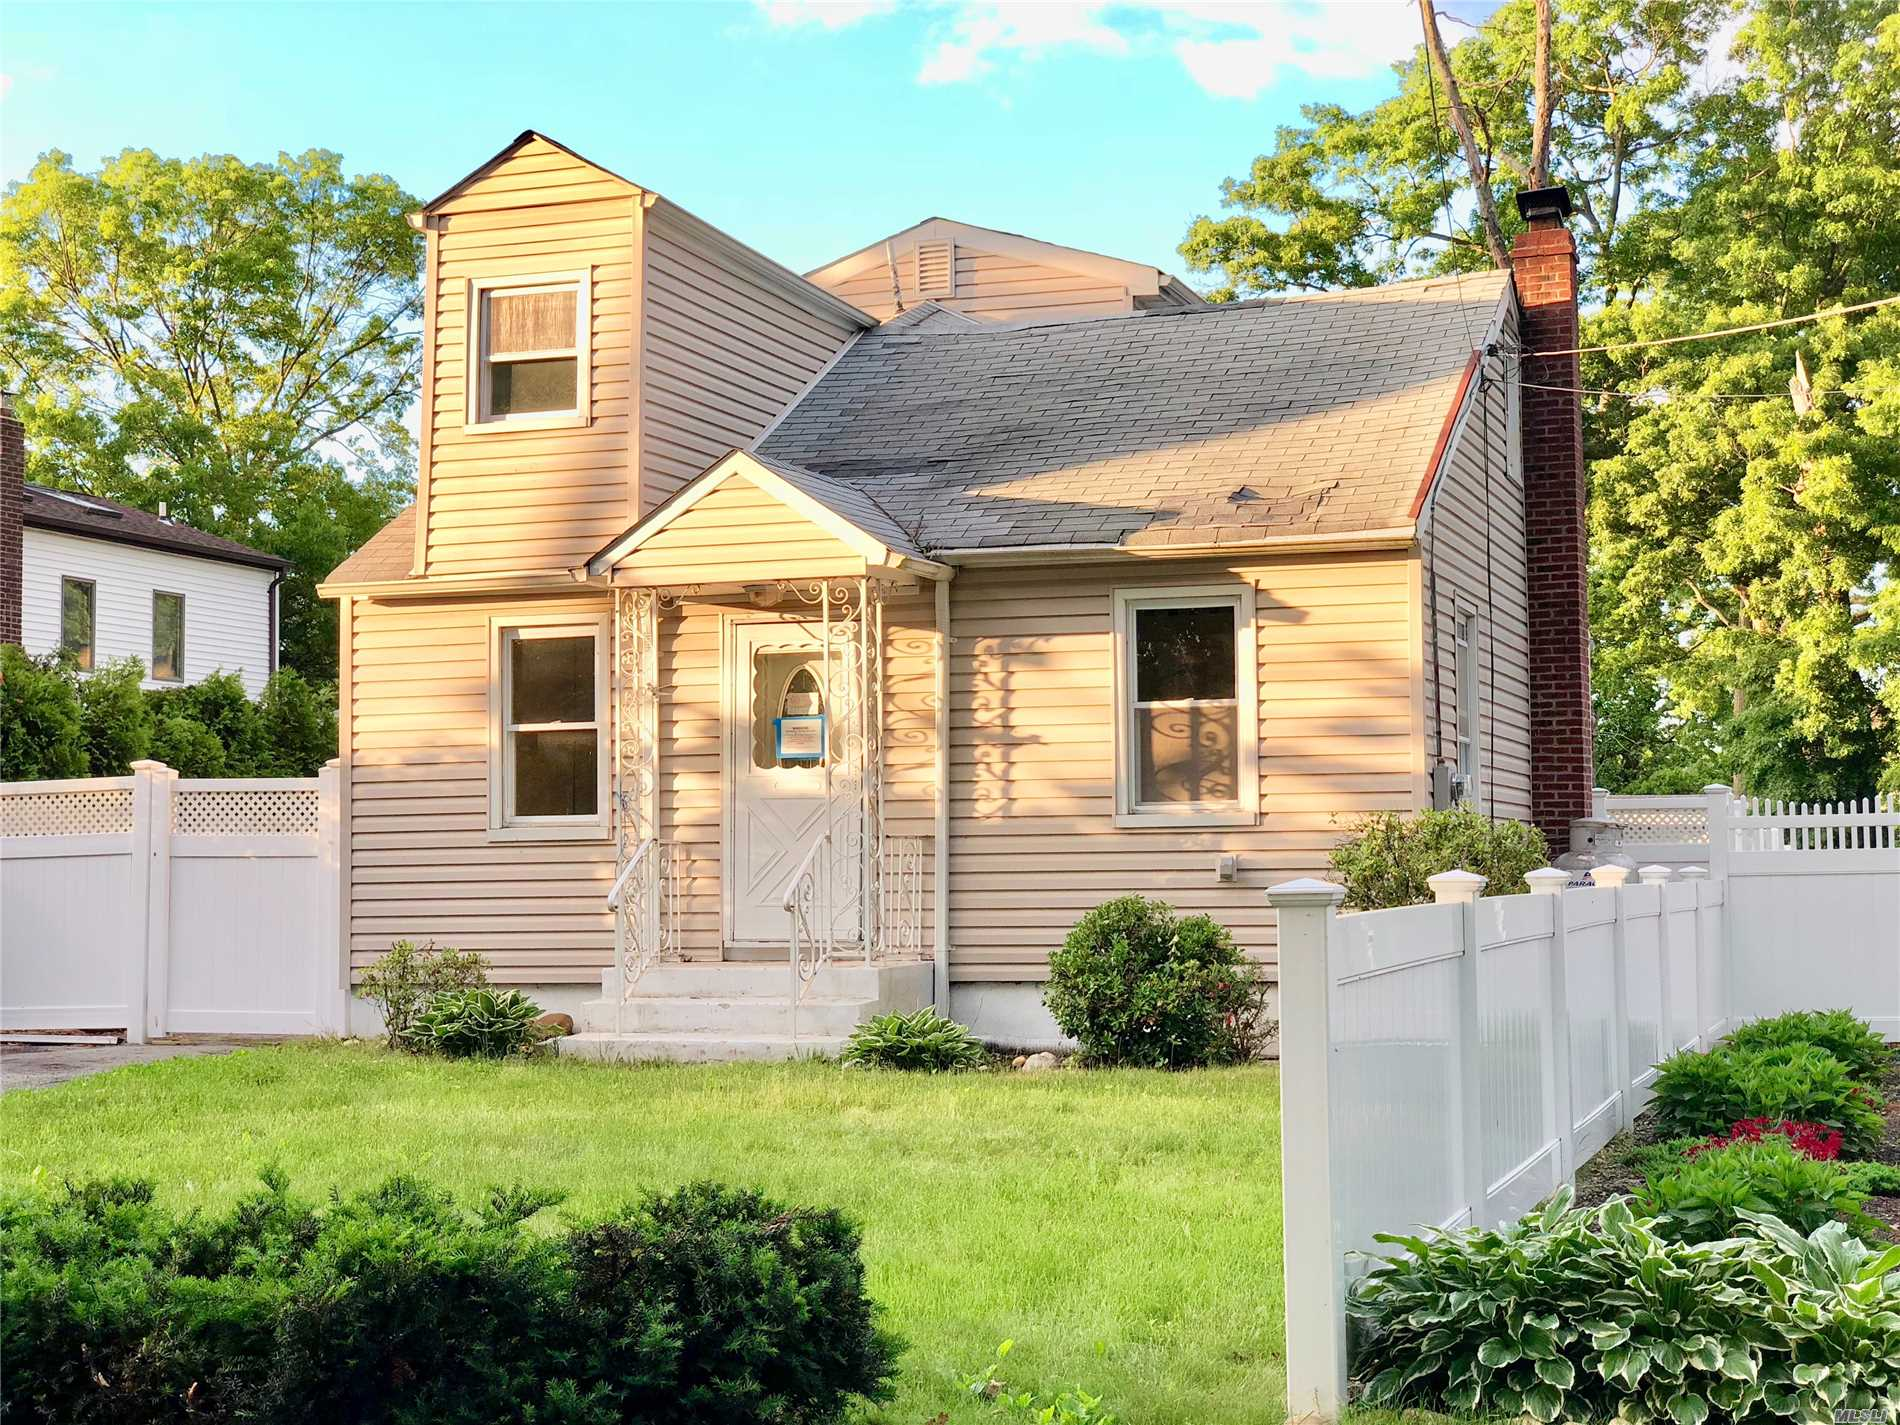 Ronkonkoma Cape Style Home Features Kitchen, Living Room, Mud Room, 3 Bedrooms, 1 Full Bath, Attic / Storage, And A Full Basement.